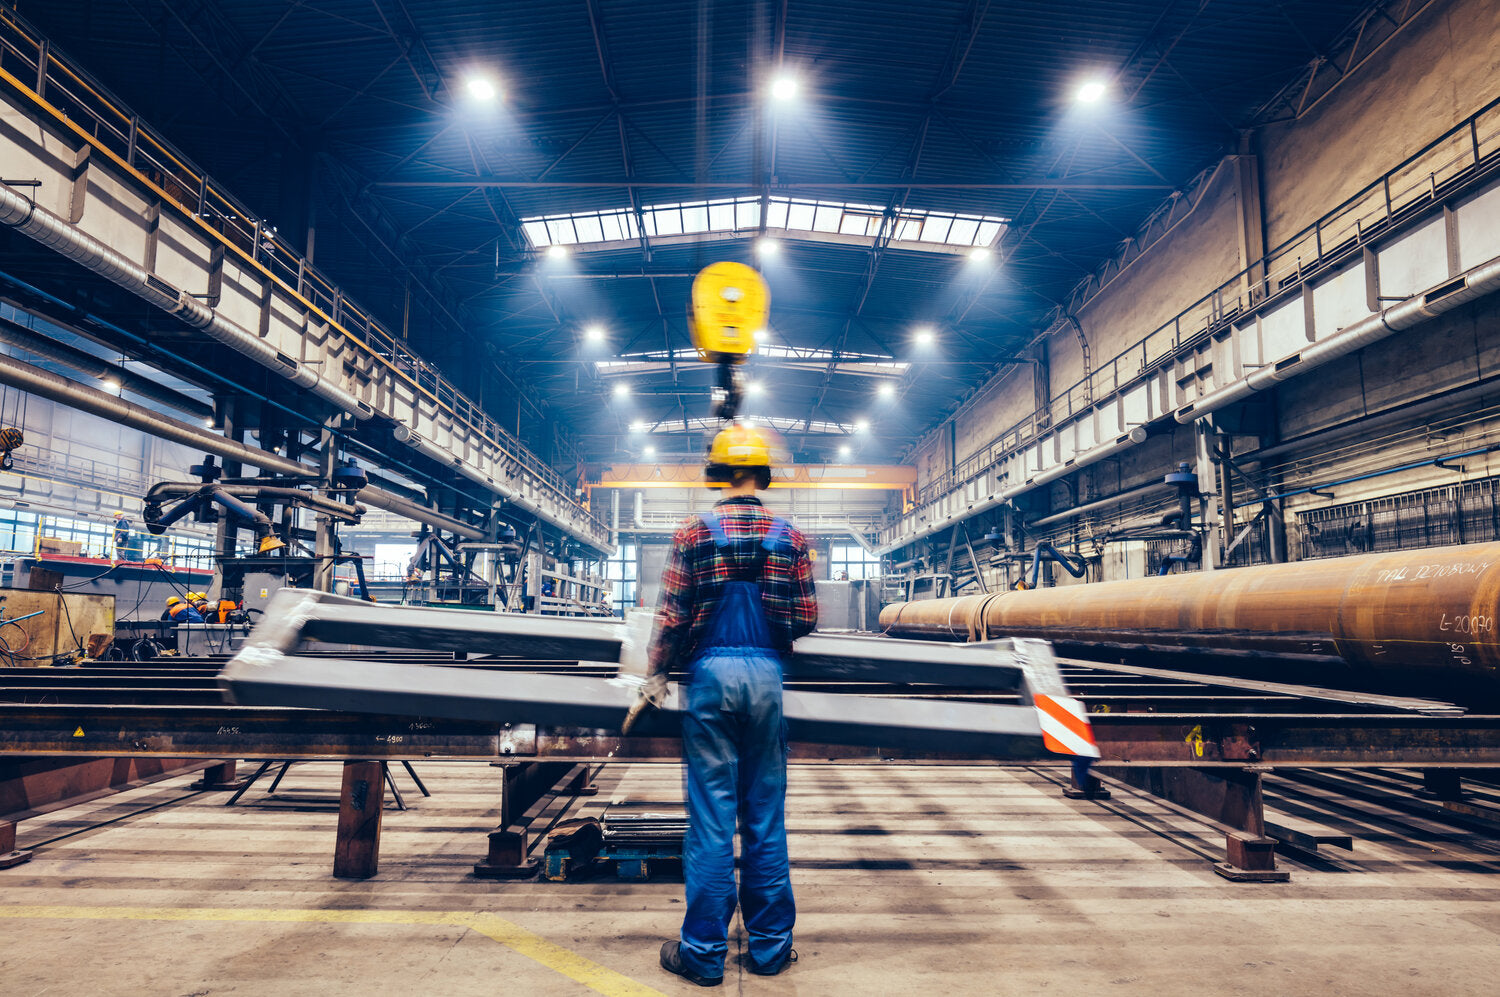 TOP 10 MOST COMMON SAFETY HAZARDS ACROSS INDUSTRIAL SECTORS